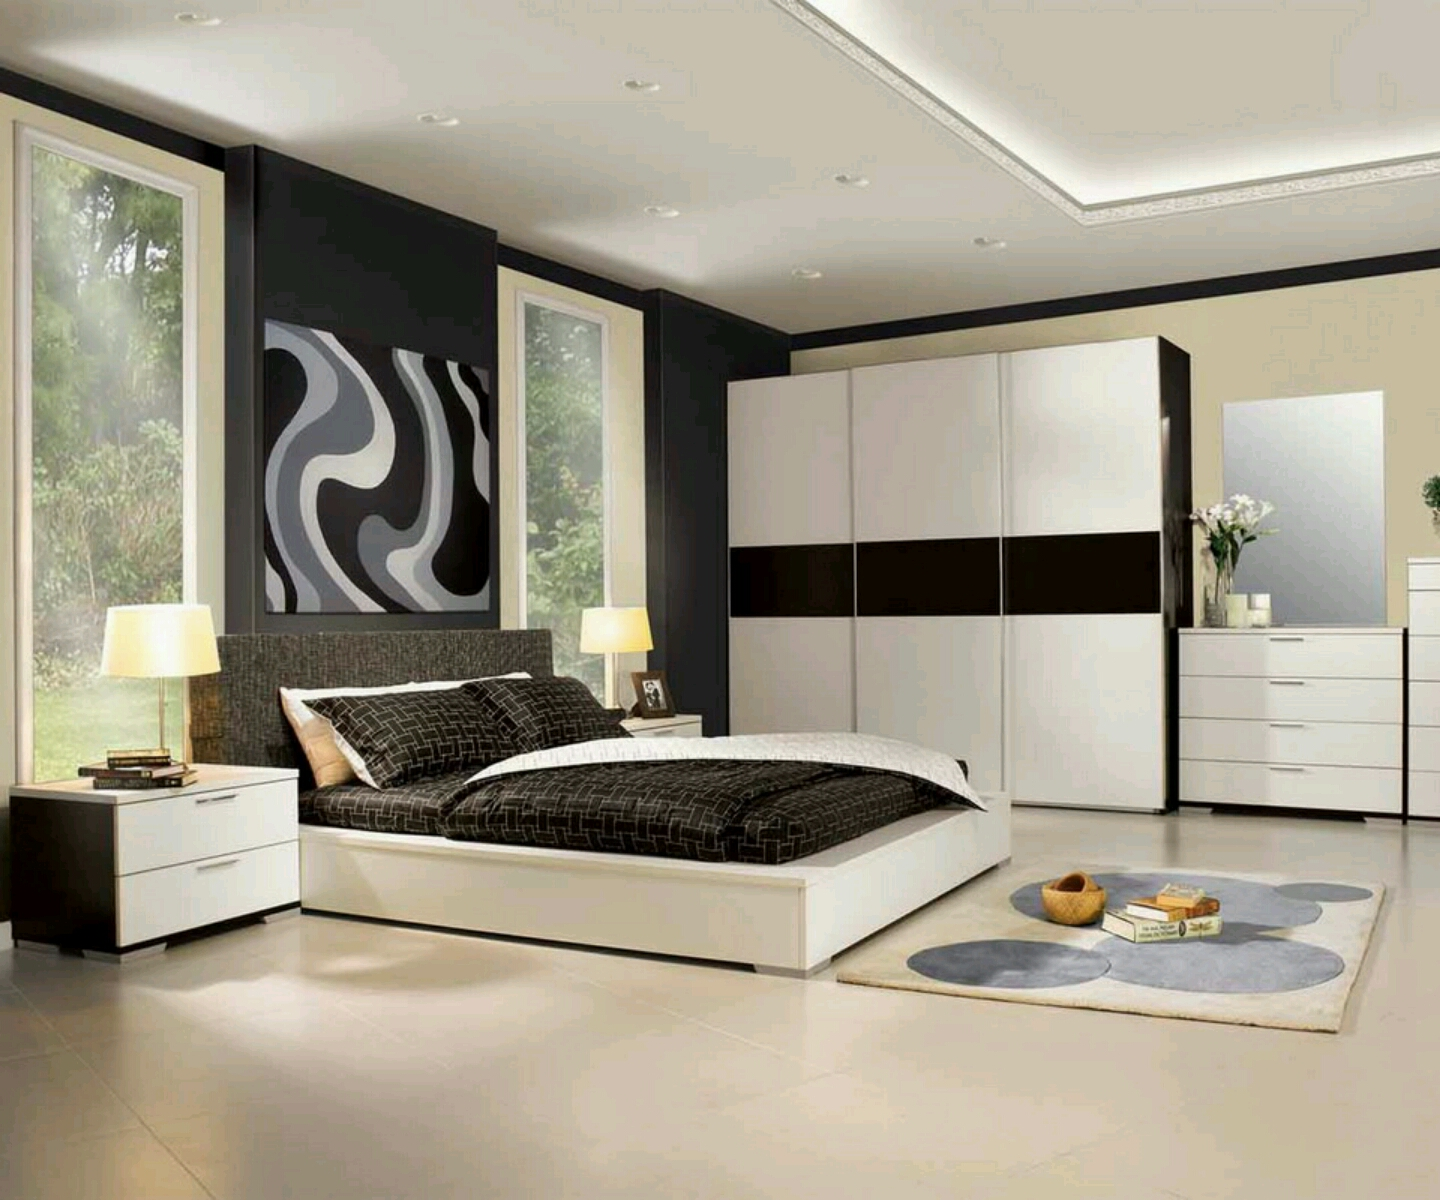 Incredible Modern Bedroom Furniture Design 1440 x 1200 · 911 kB · jpeg